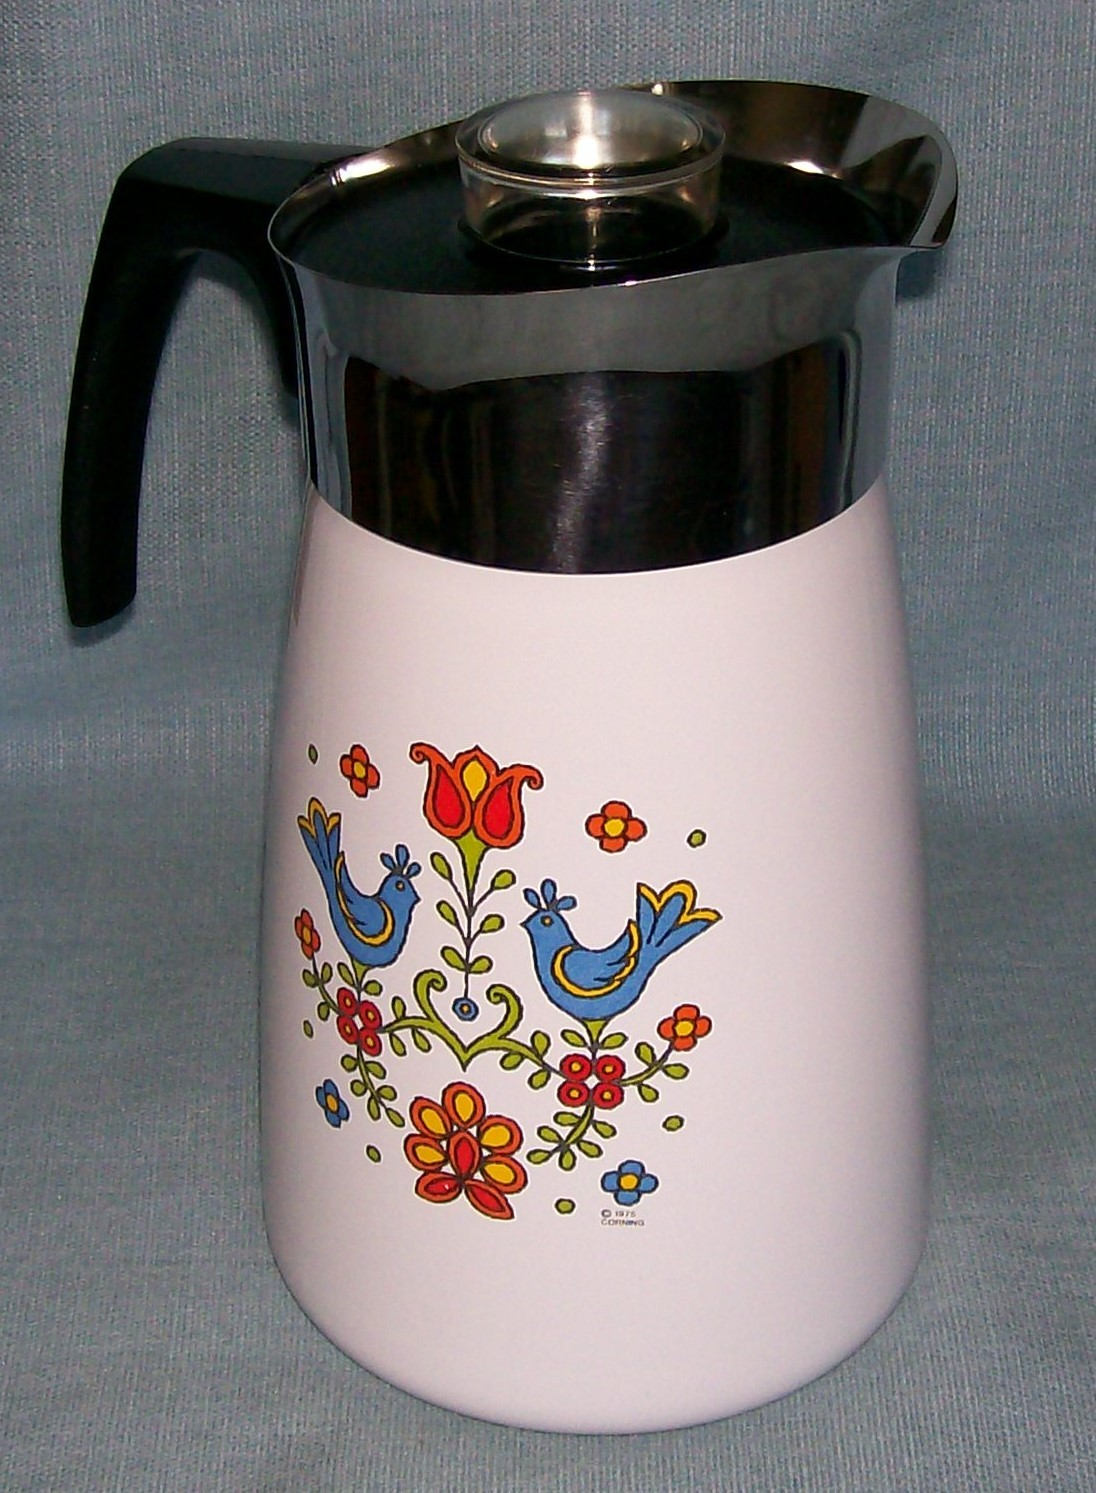 Vtg Corning COUNTRY FESTIVAL Friendship Stove Top 10 Cup Percolator P149 Birds image 2